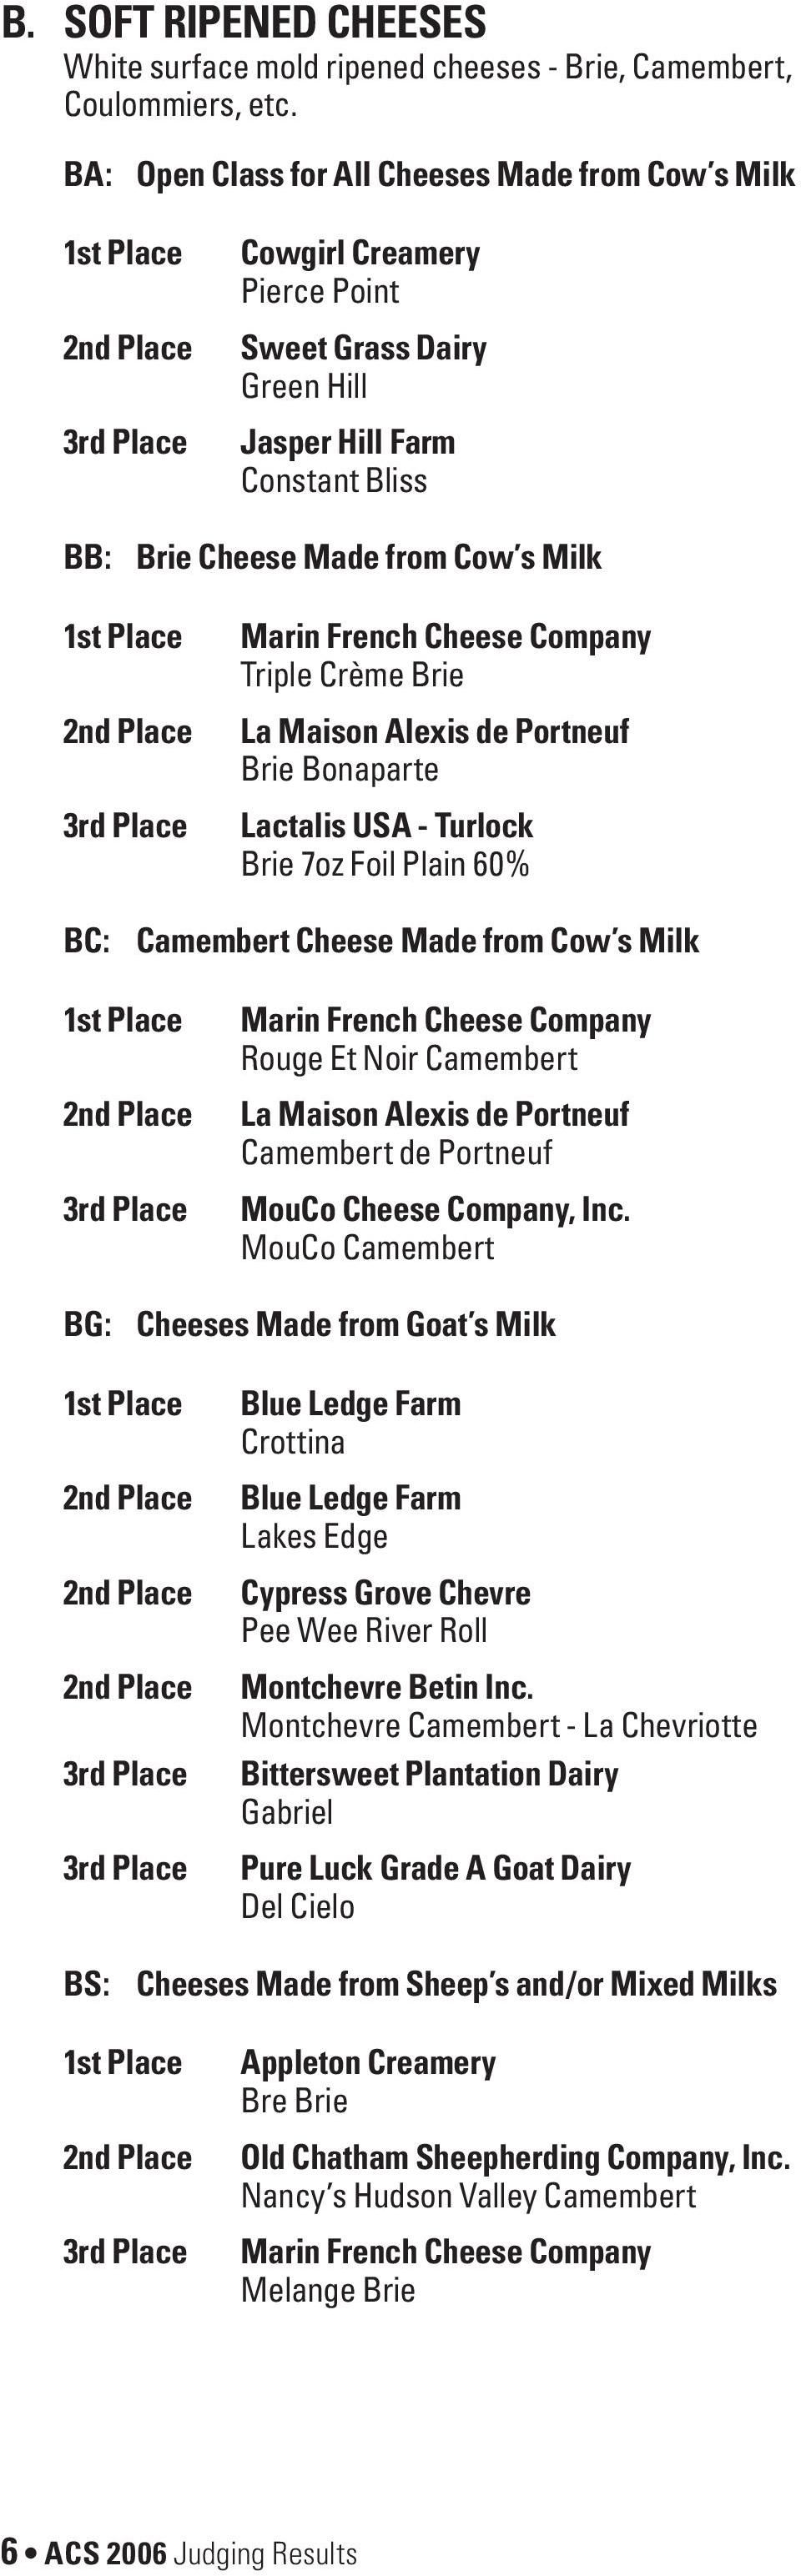 Maison Et Spa Coulommiers 2006 judging results - pdf free download